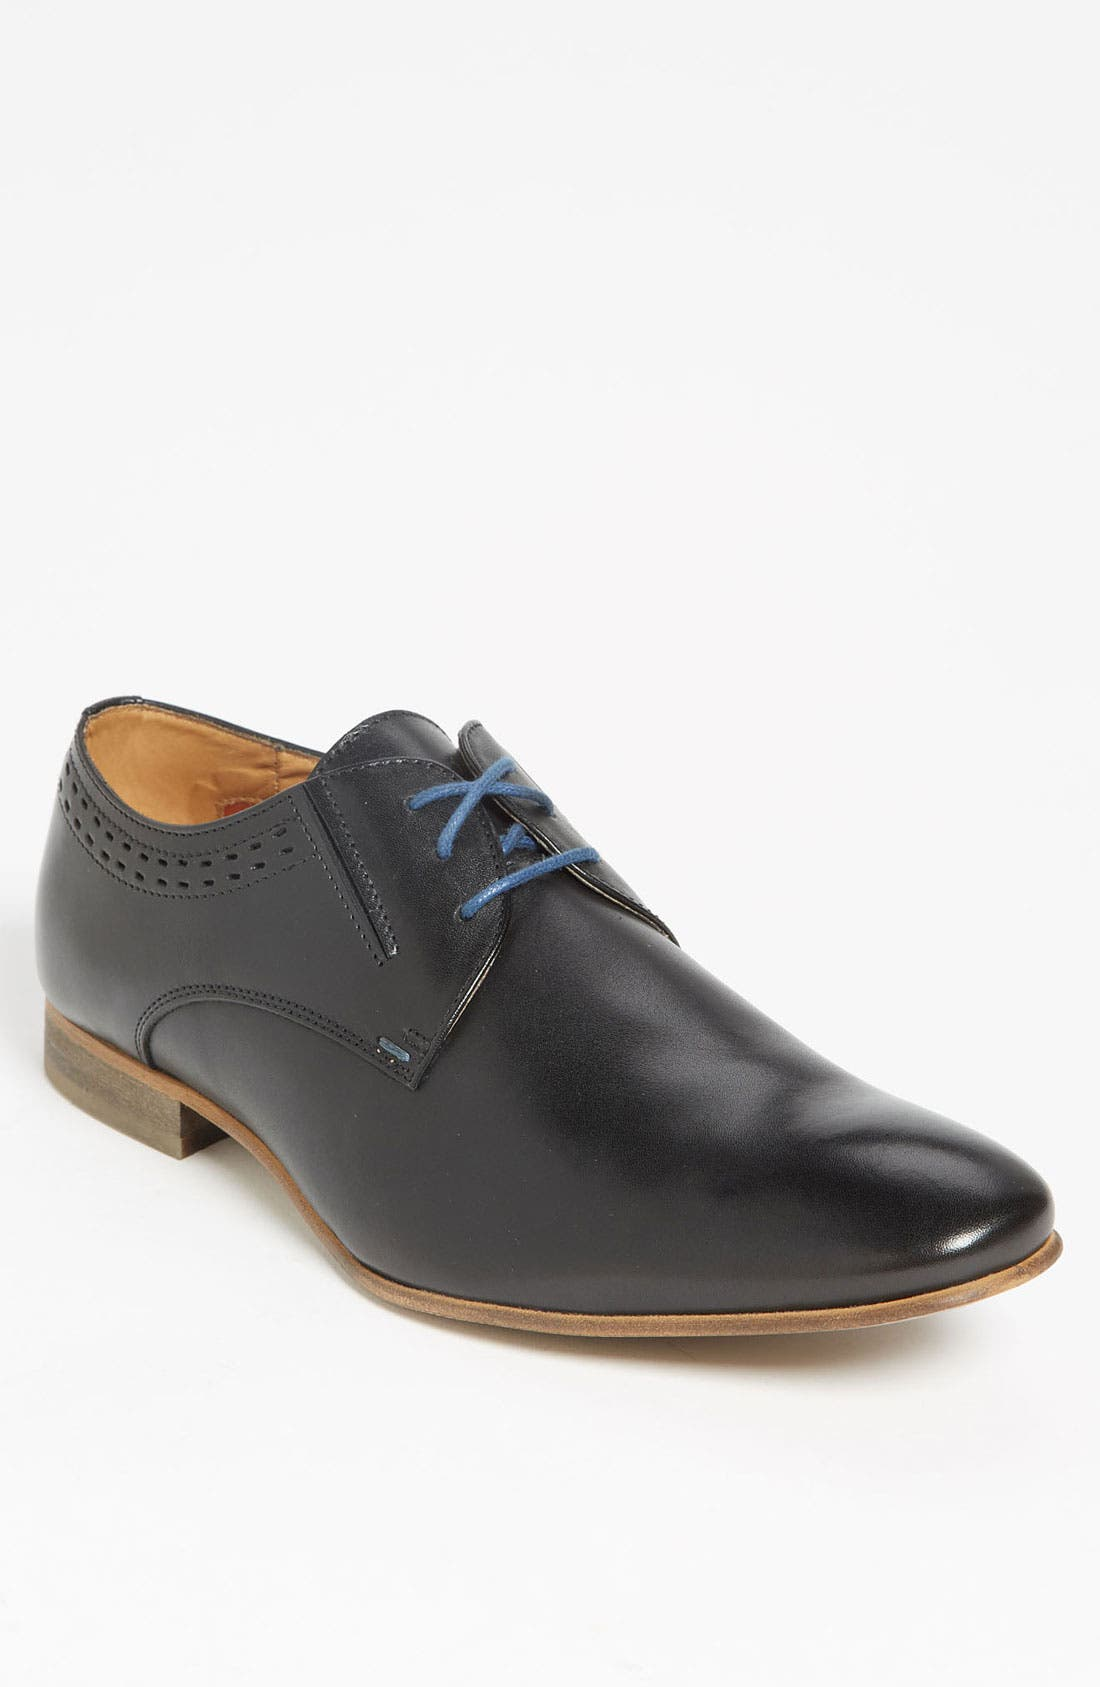 Alternate Image 1 Selected - ALDO 'Preostcot' Plain Toe Derby